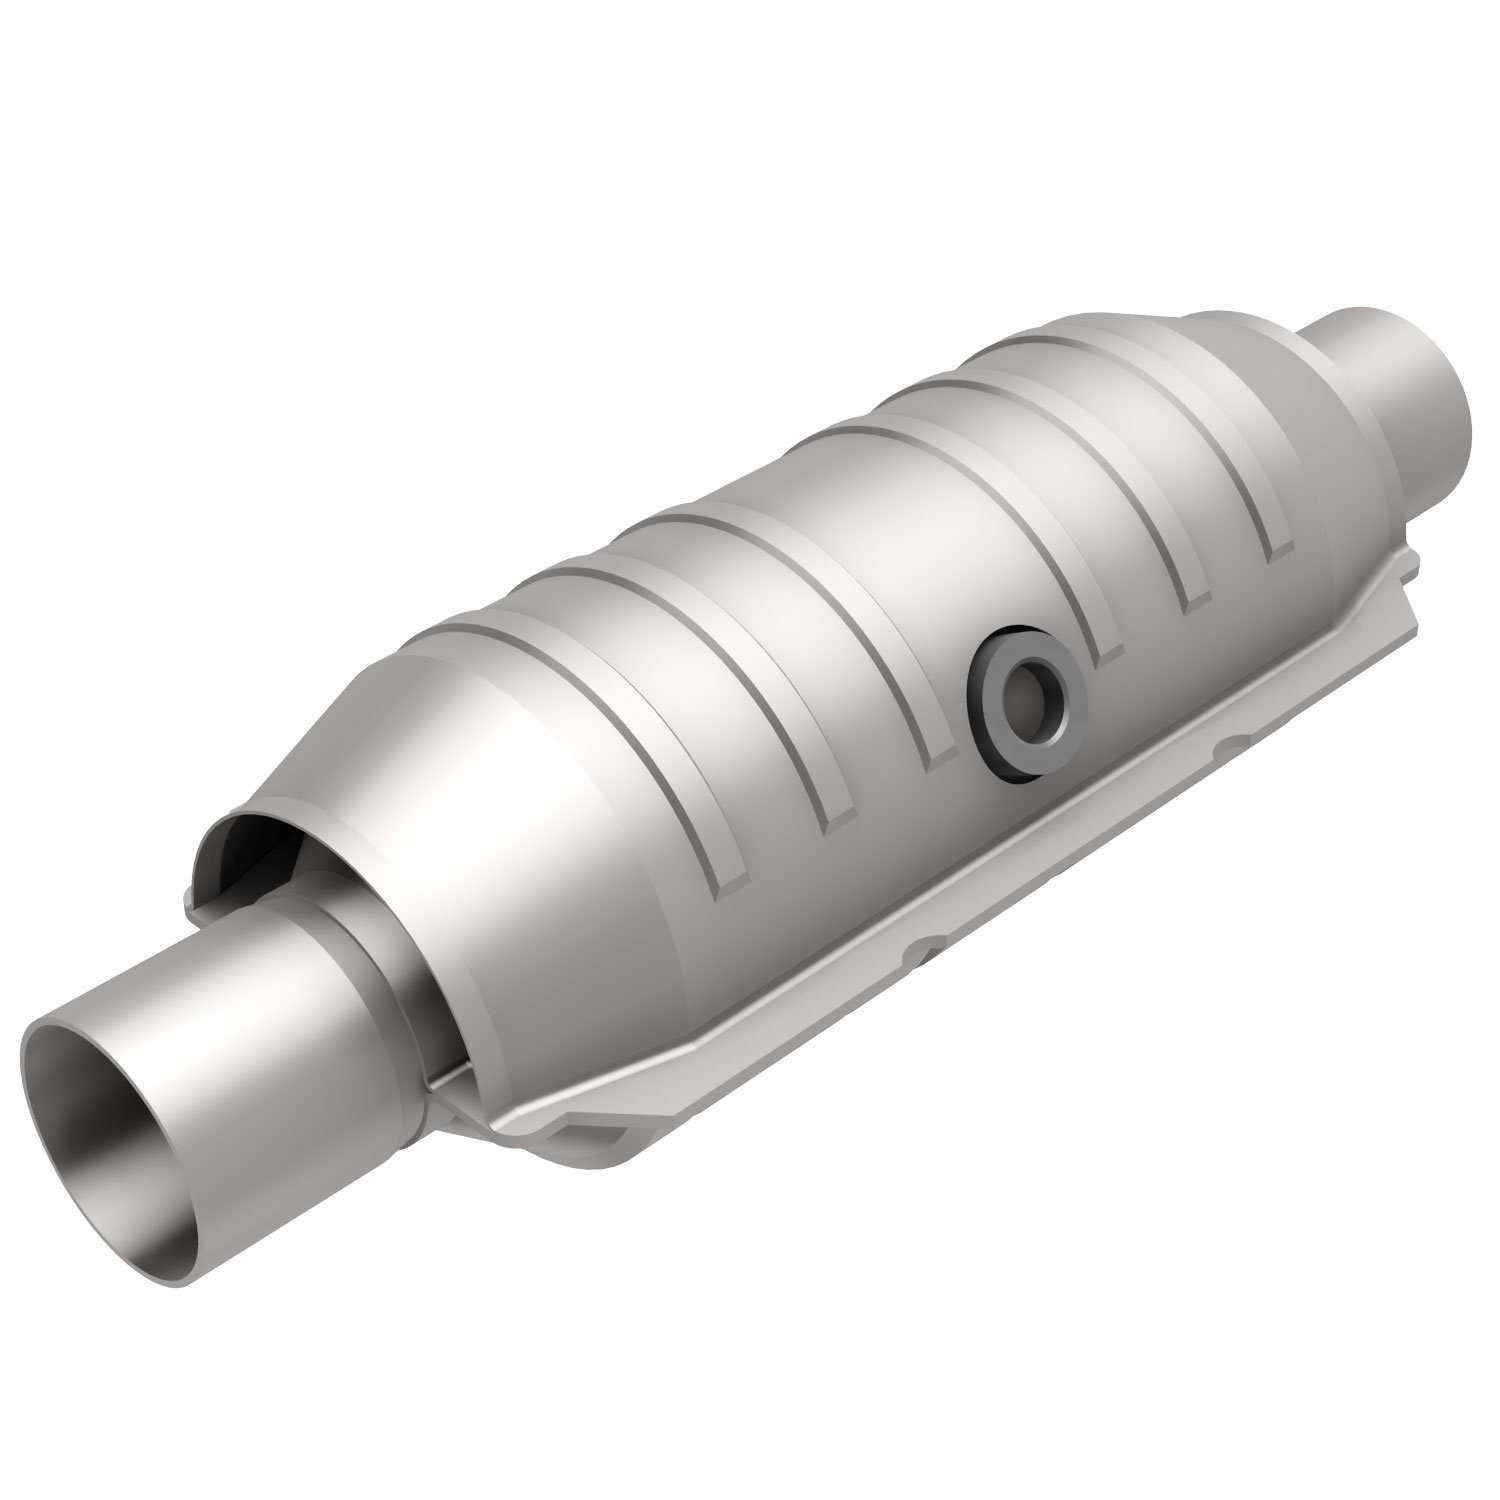 2003 Toyota Camry Catalytic Converter Replacement Bulletin